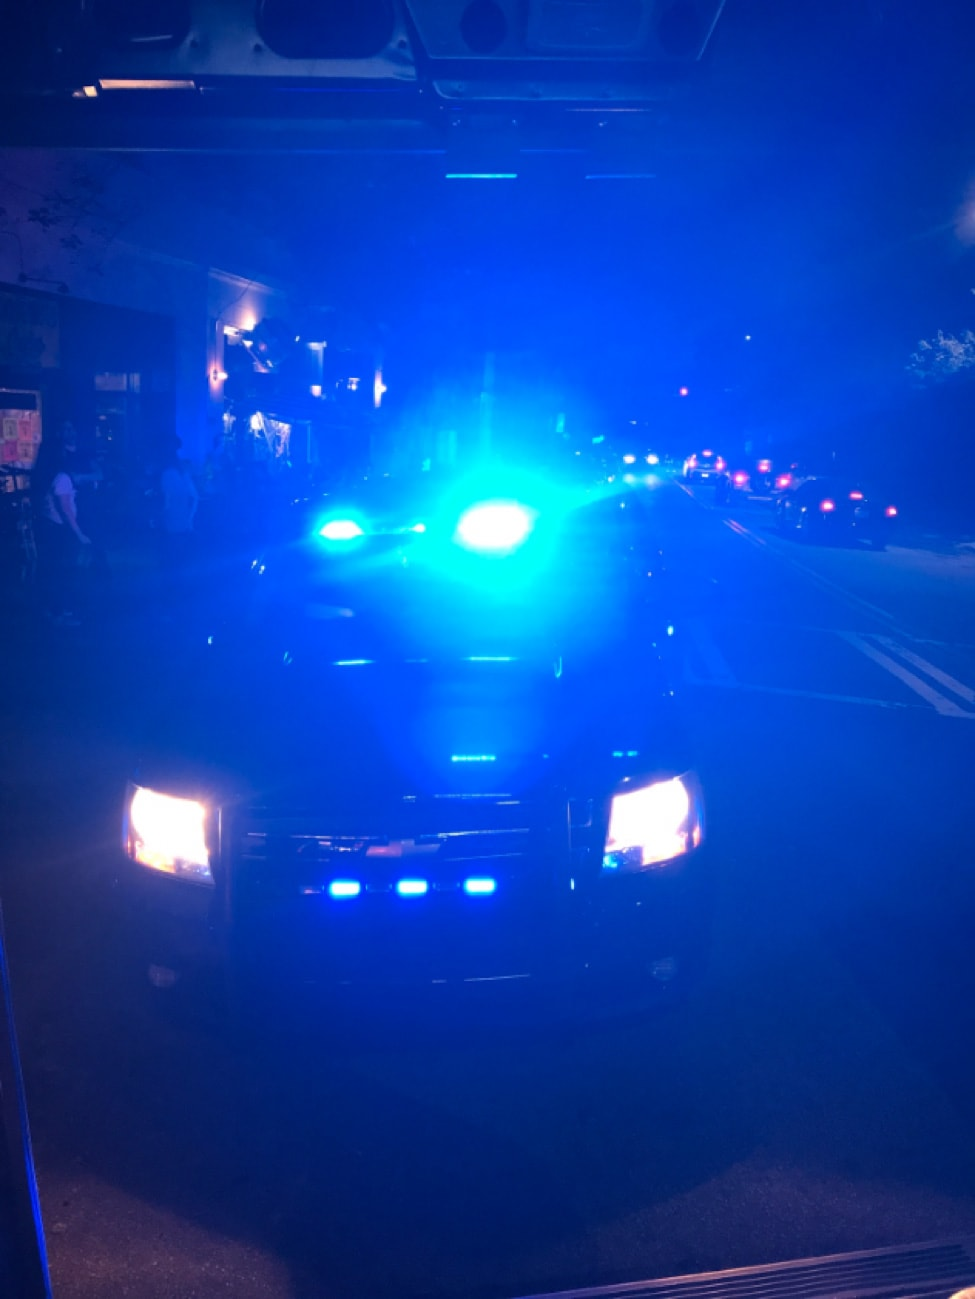 Front view of a police car on the street with it's light on at night